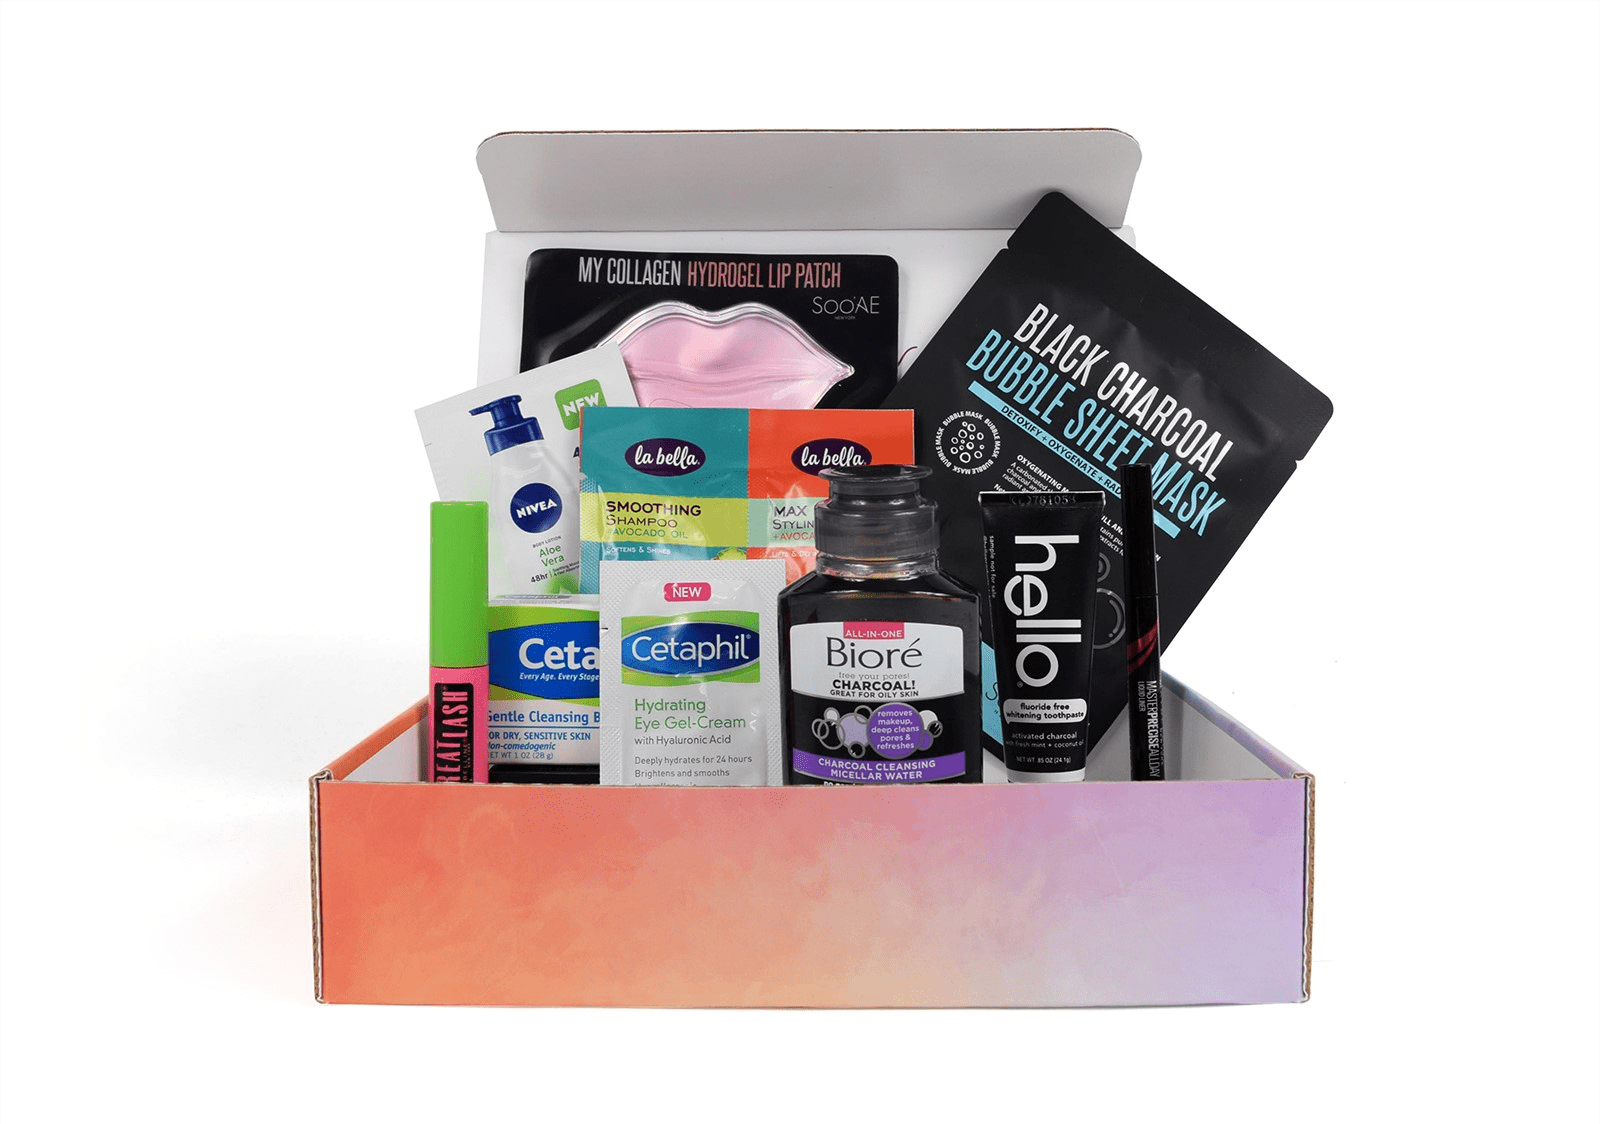 Fall 2018 Walmart Beauty Box Trendsetter & Classic Box Full Spoilers!